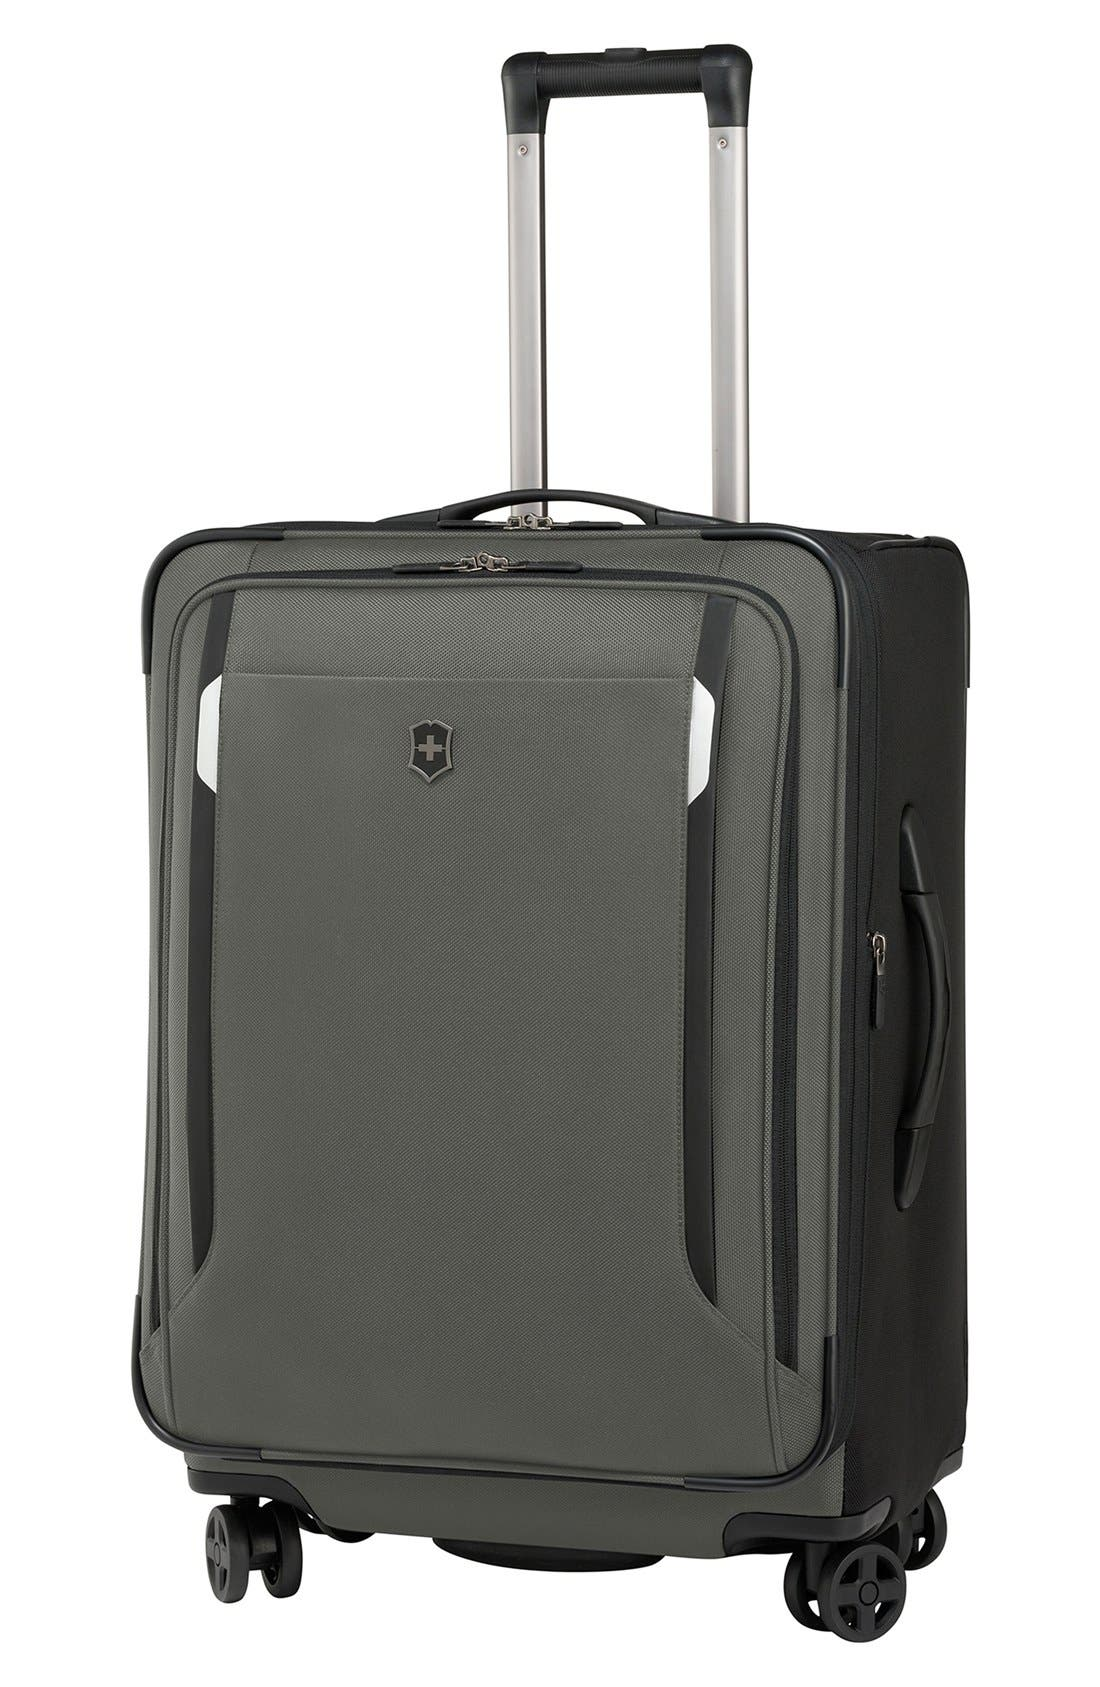 WT 5.0 Dual Caster Wheeled 24-Inch Packing Case,                         Main,                         color, 399